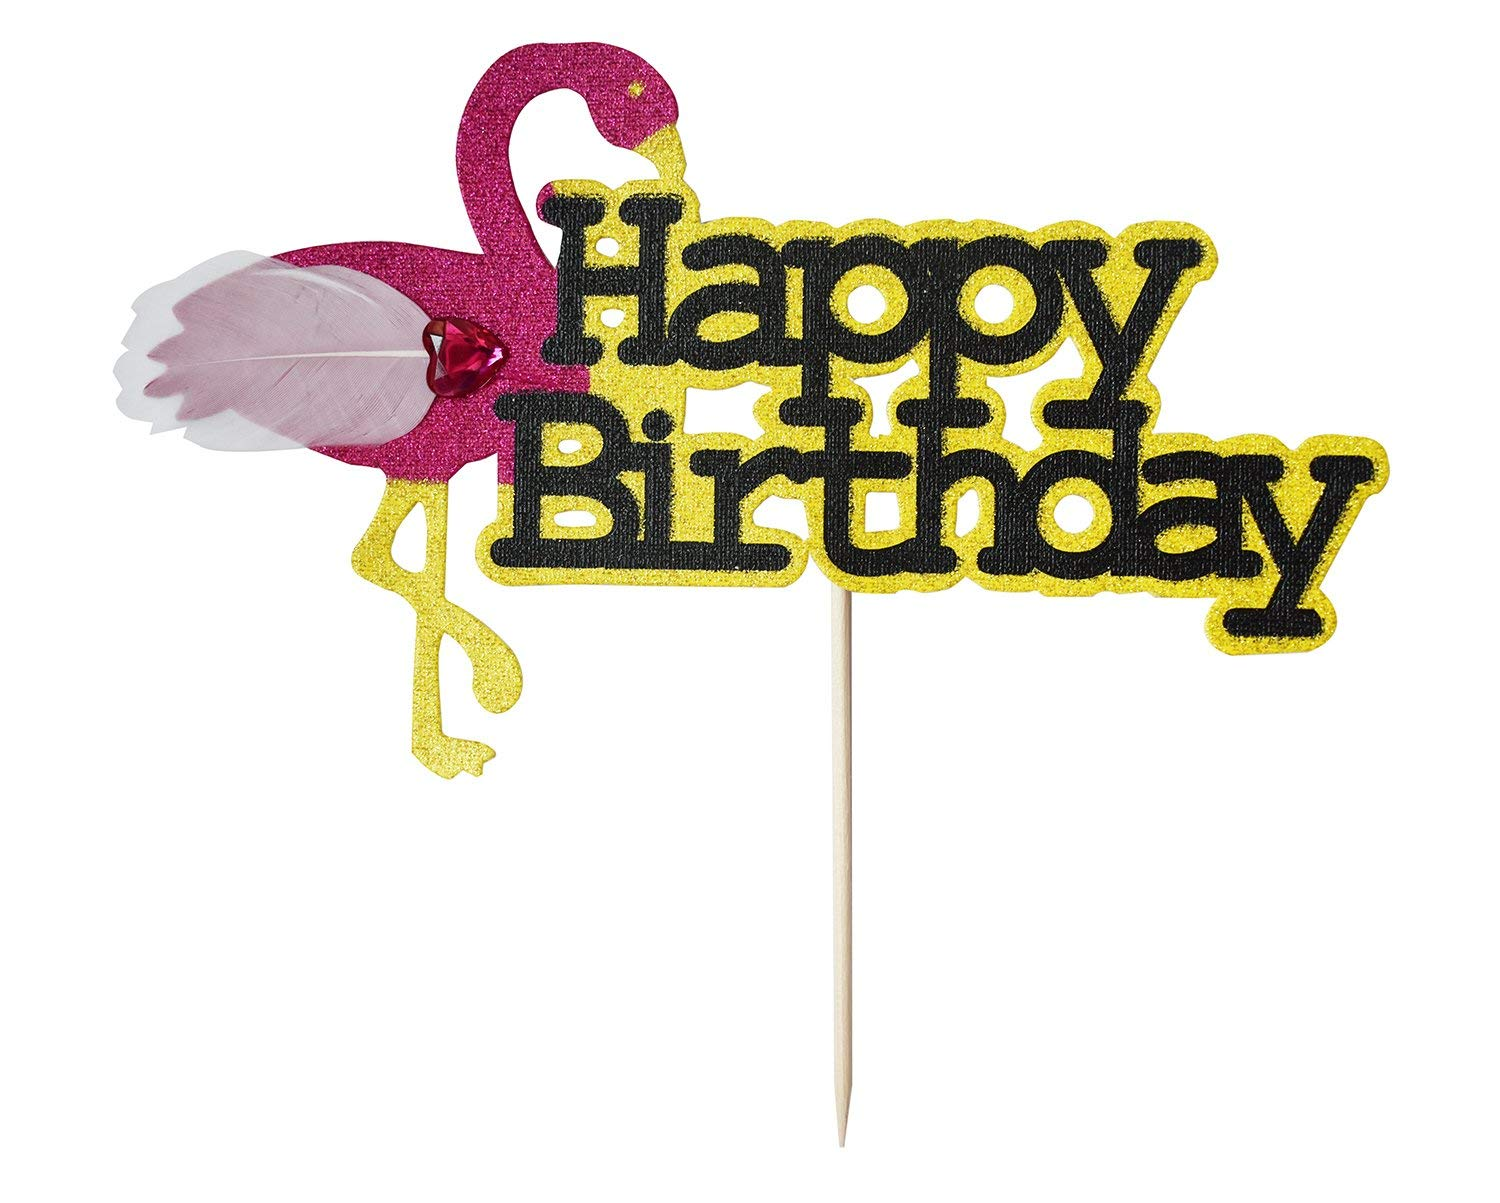 Brcohco HAPPY Birthday Cake Topper Decoration Gold Glitter